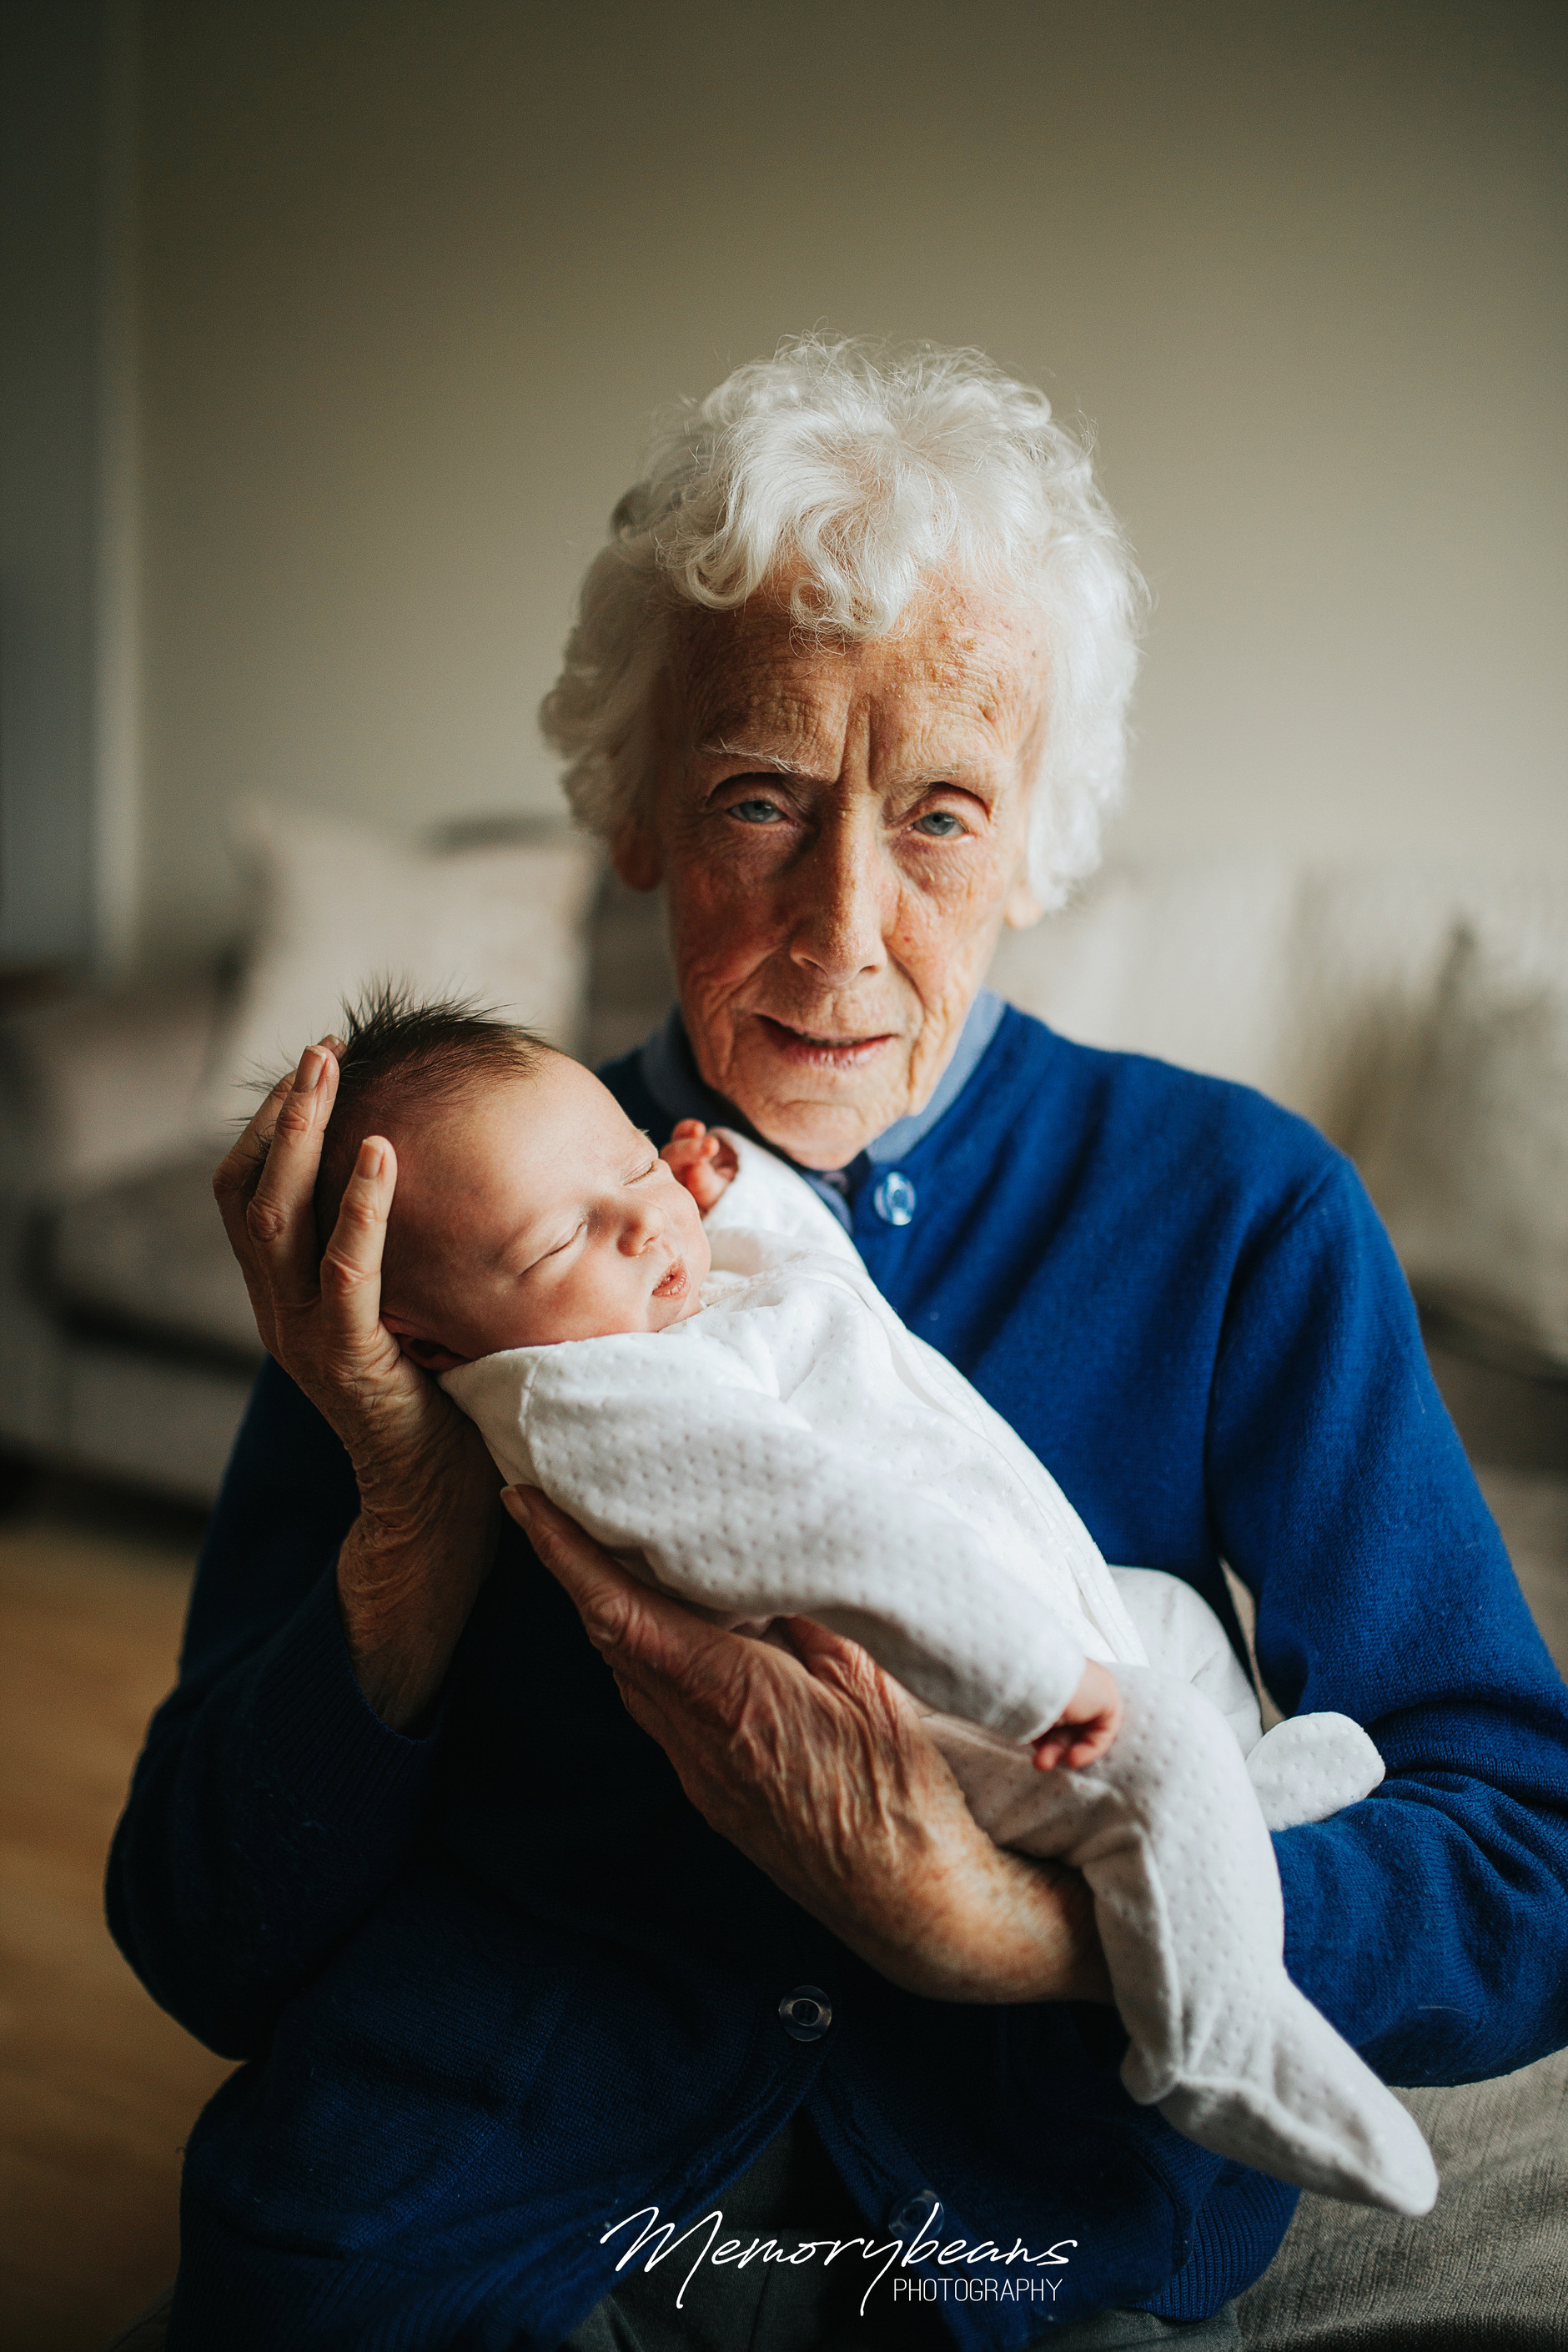 Great grandmother holding newborn baby